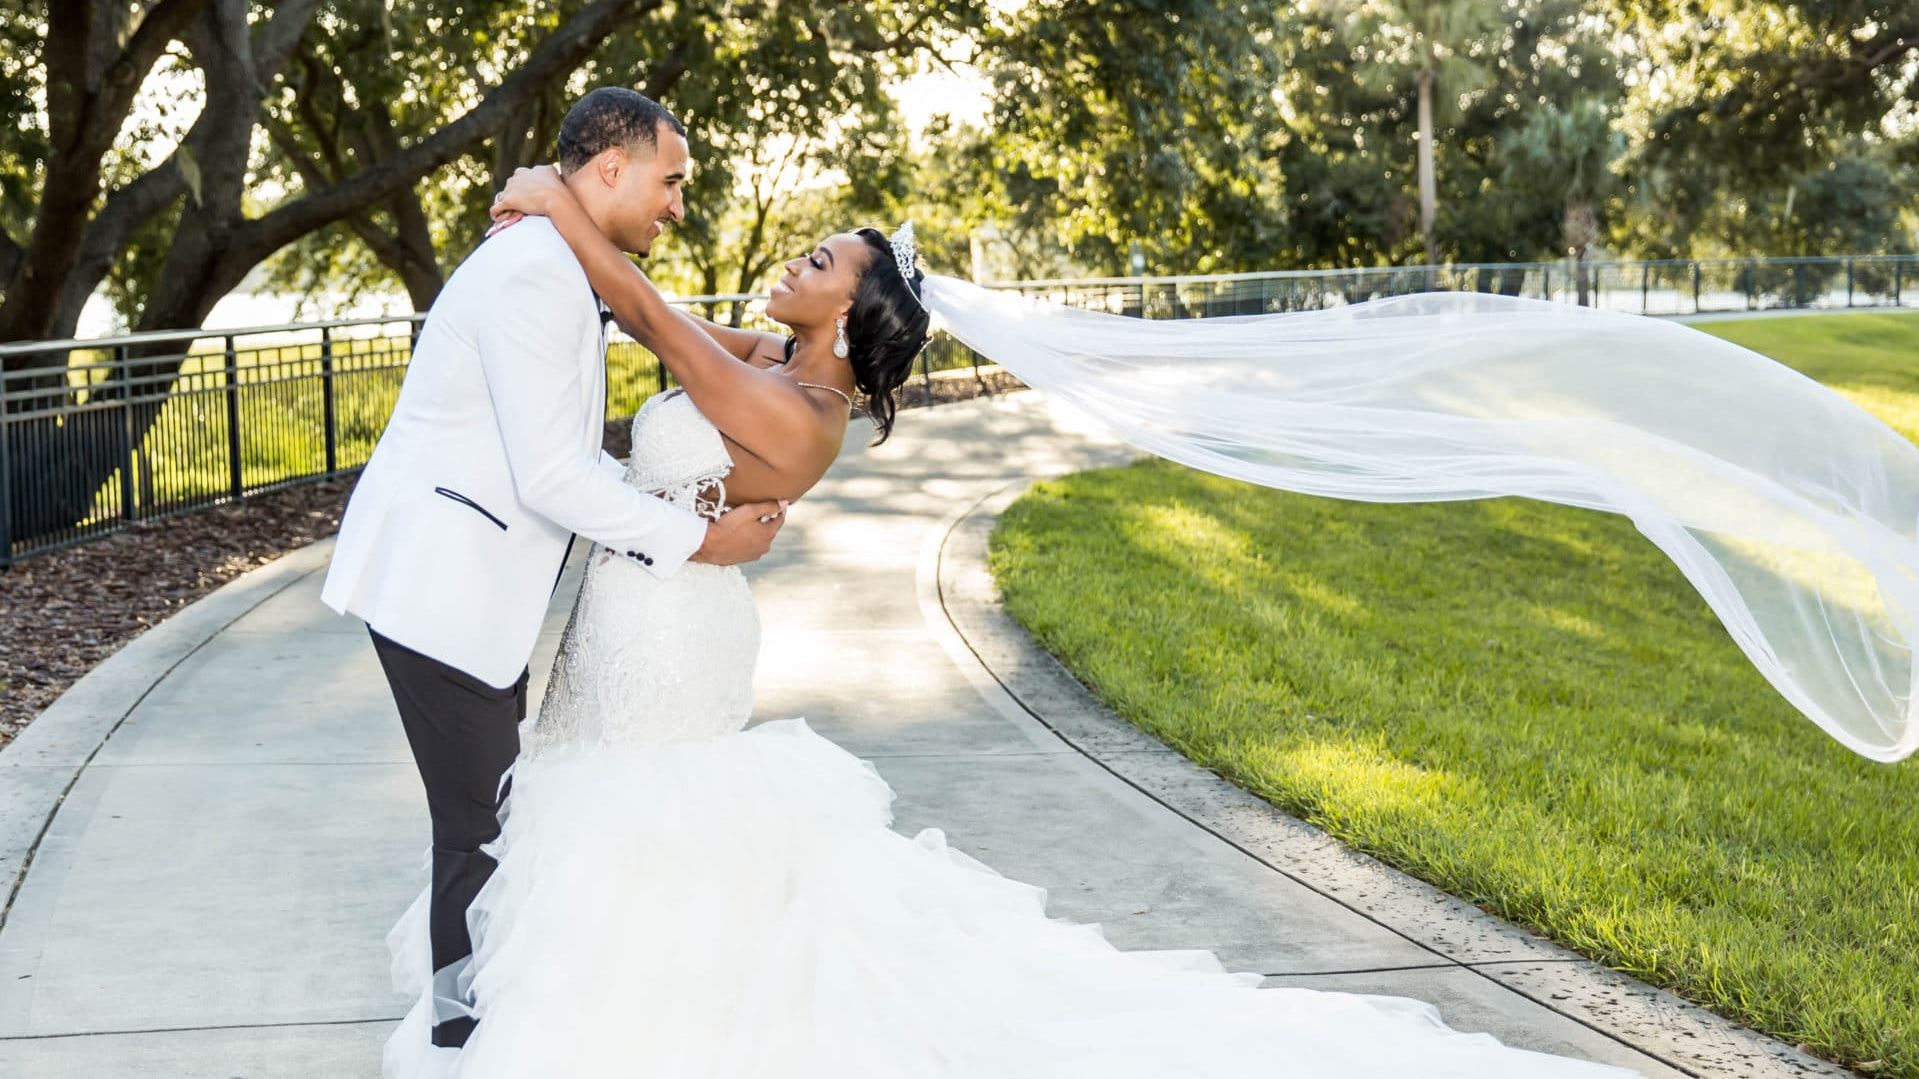 Bridal Bliss: Two Snaps For Altrichia and Anthony's All-White Summer Wedding